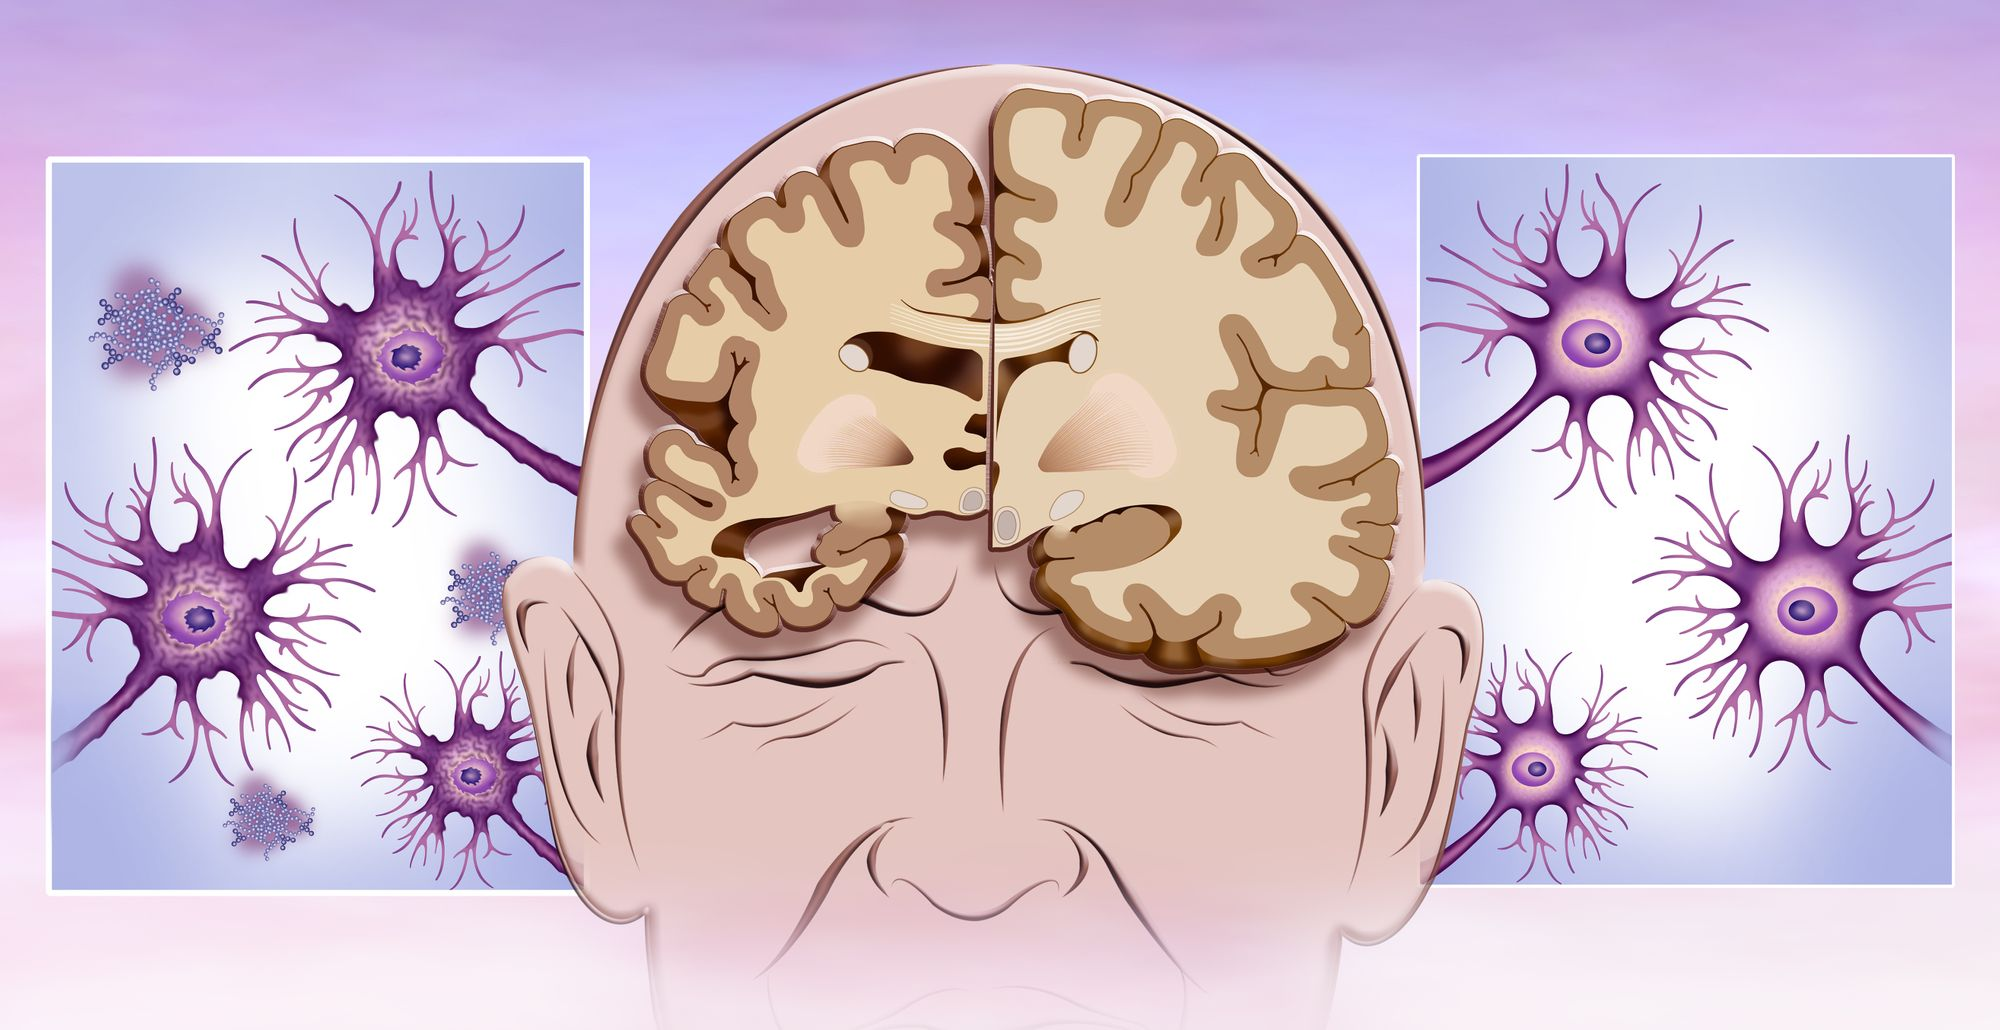 stroke and dementia can cause brain atrophy